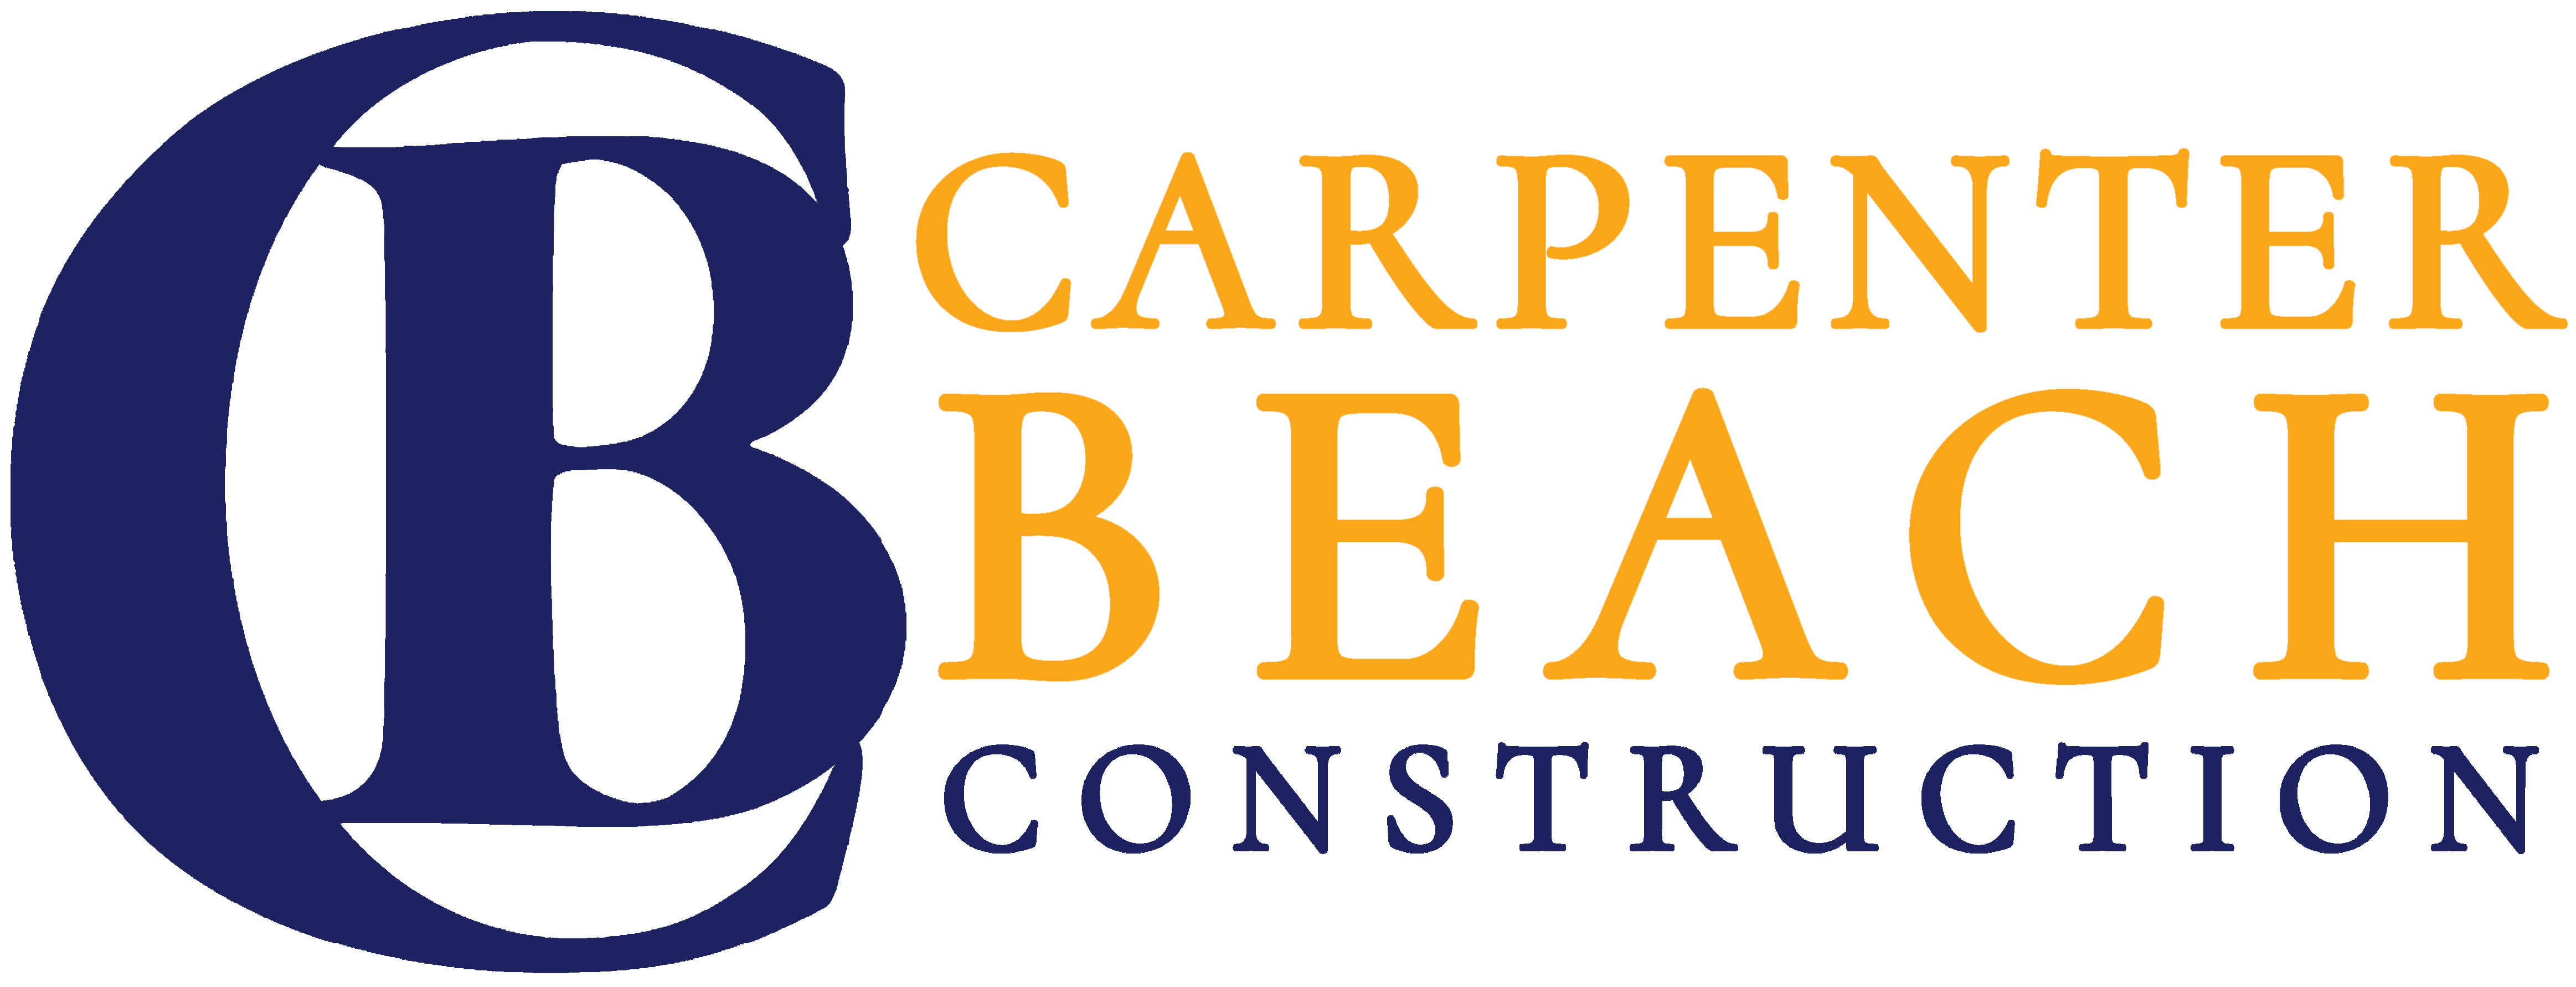 Carpenter Beach Construction